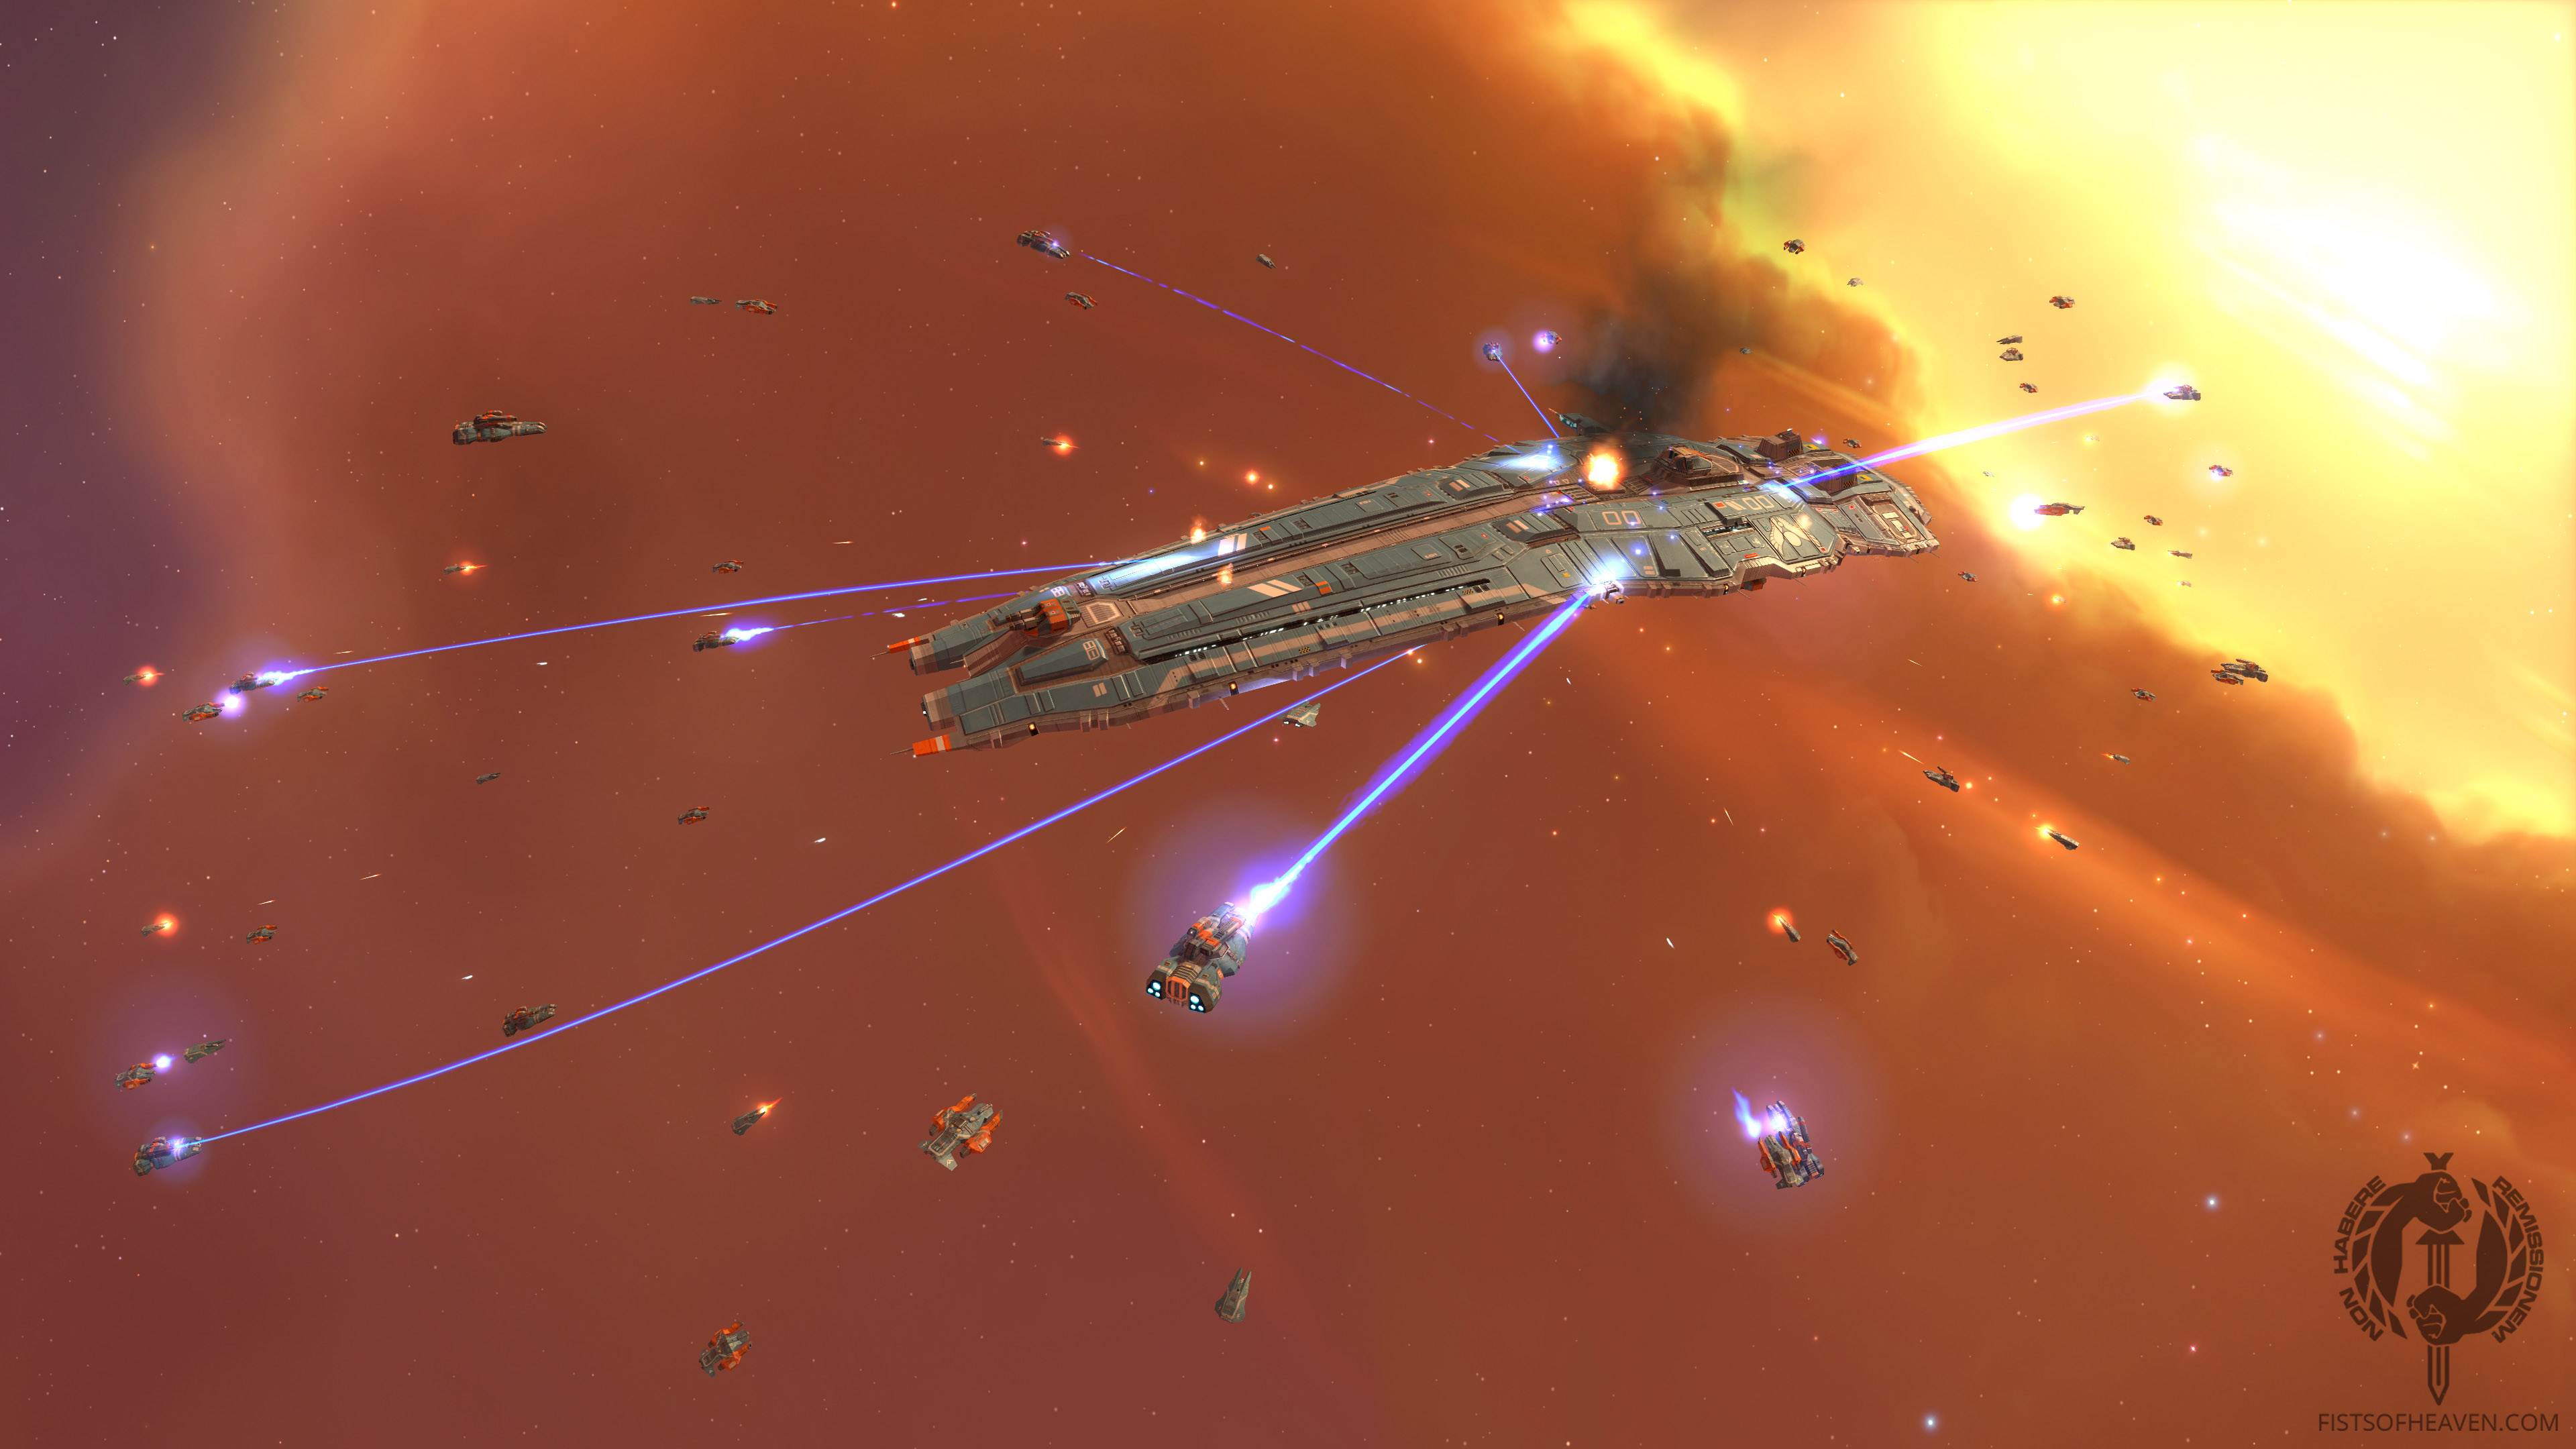 Homeworld Remastered Patch - Field of View Effect - Fists of Heaven